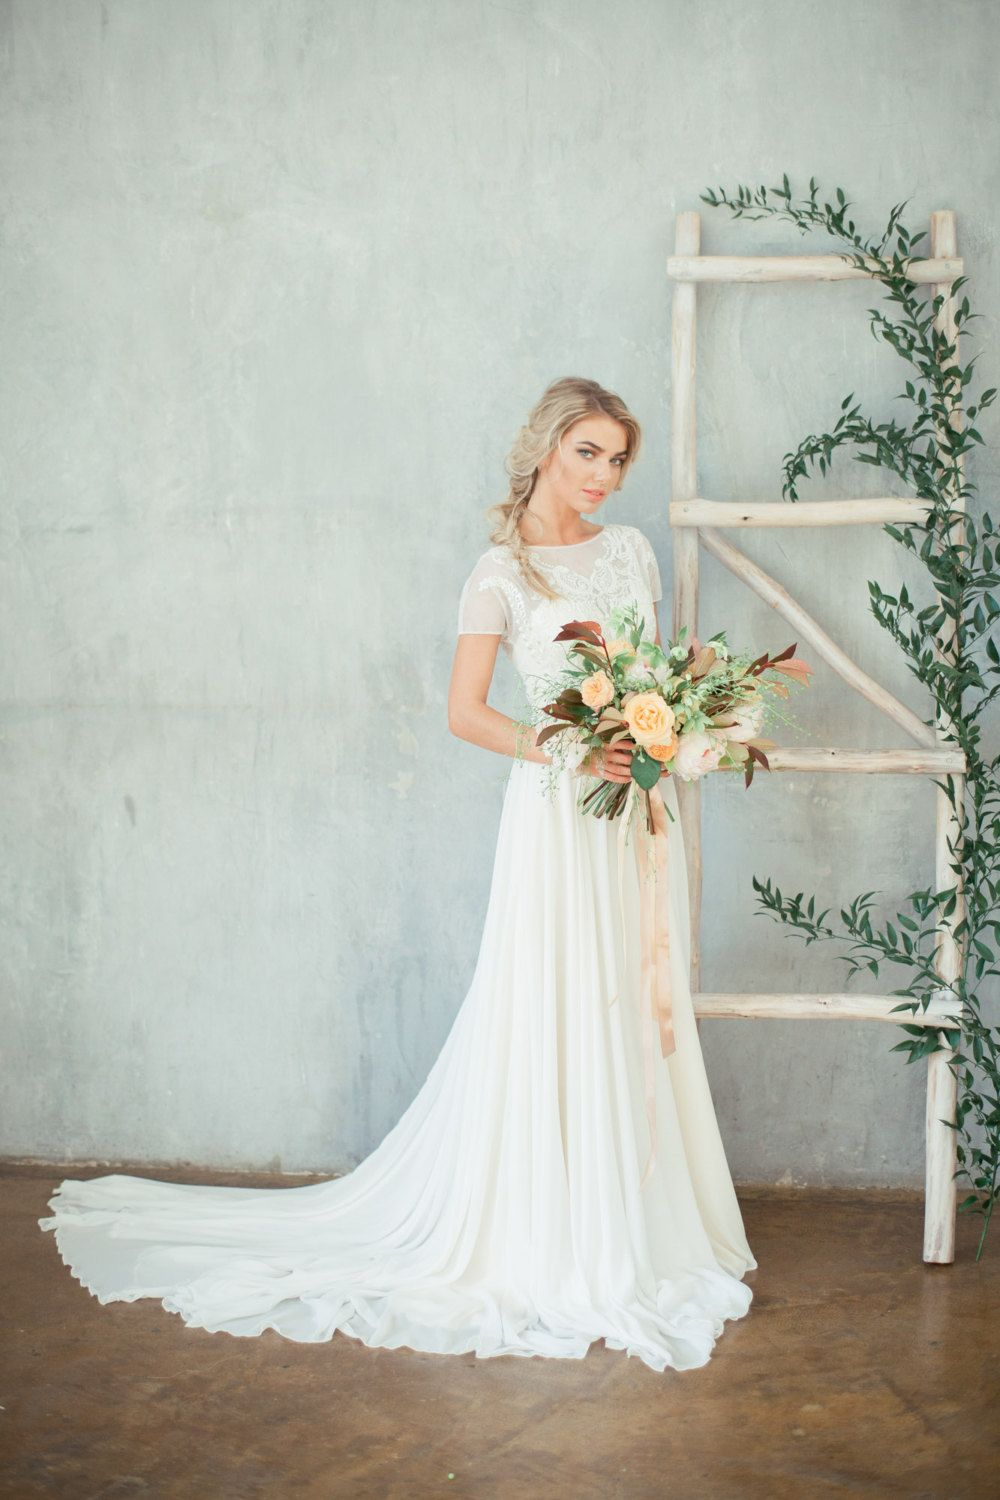 20 Beautiful Wedding Dresses Under $1000 That Look Anything But ...